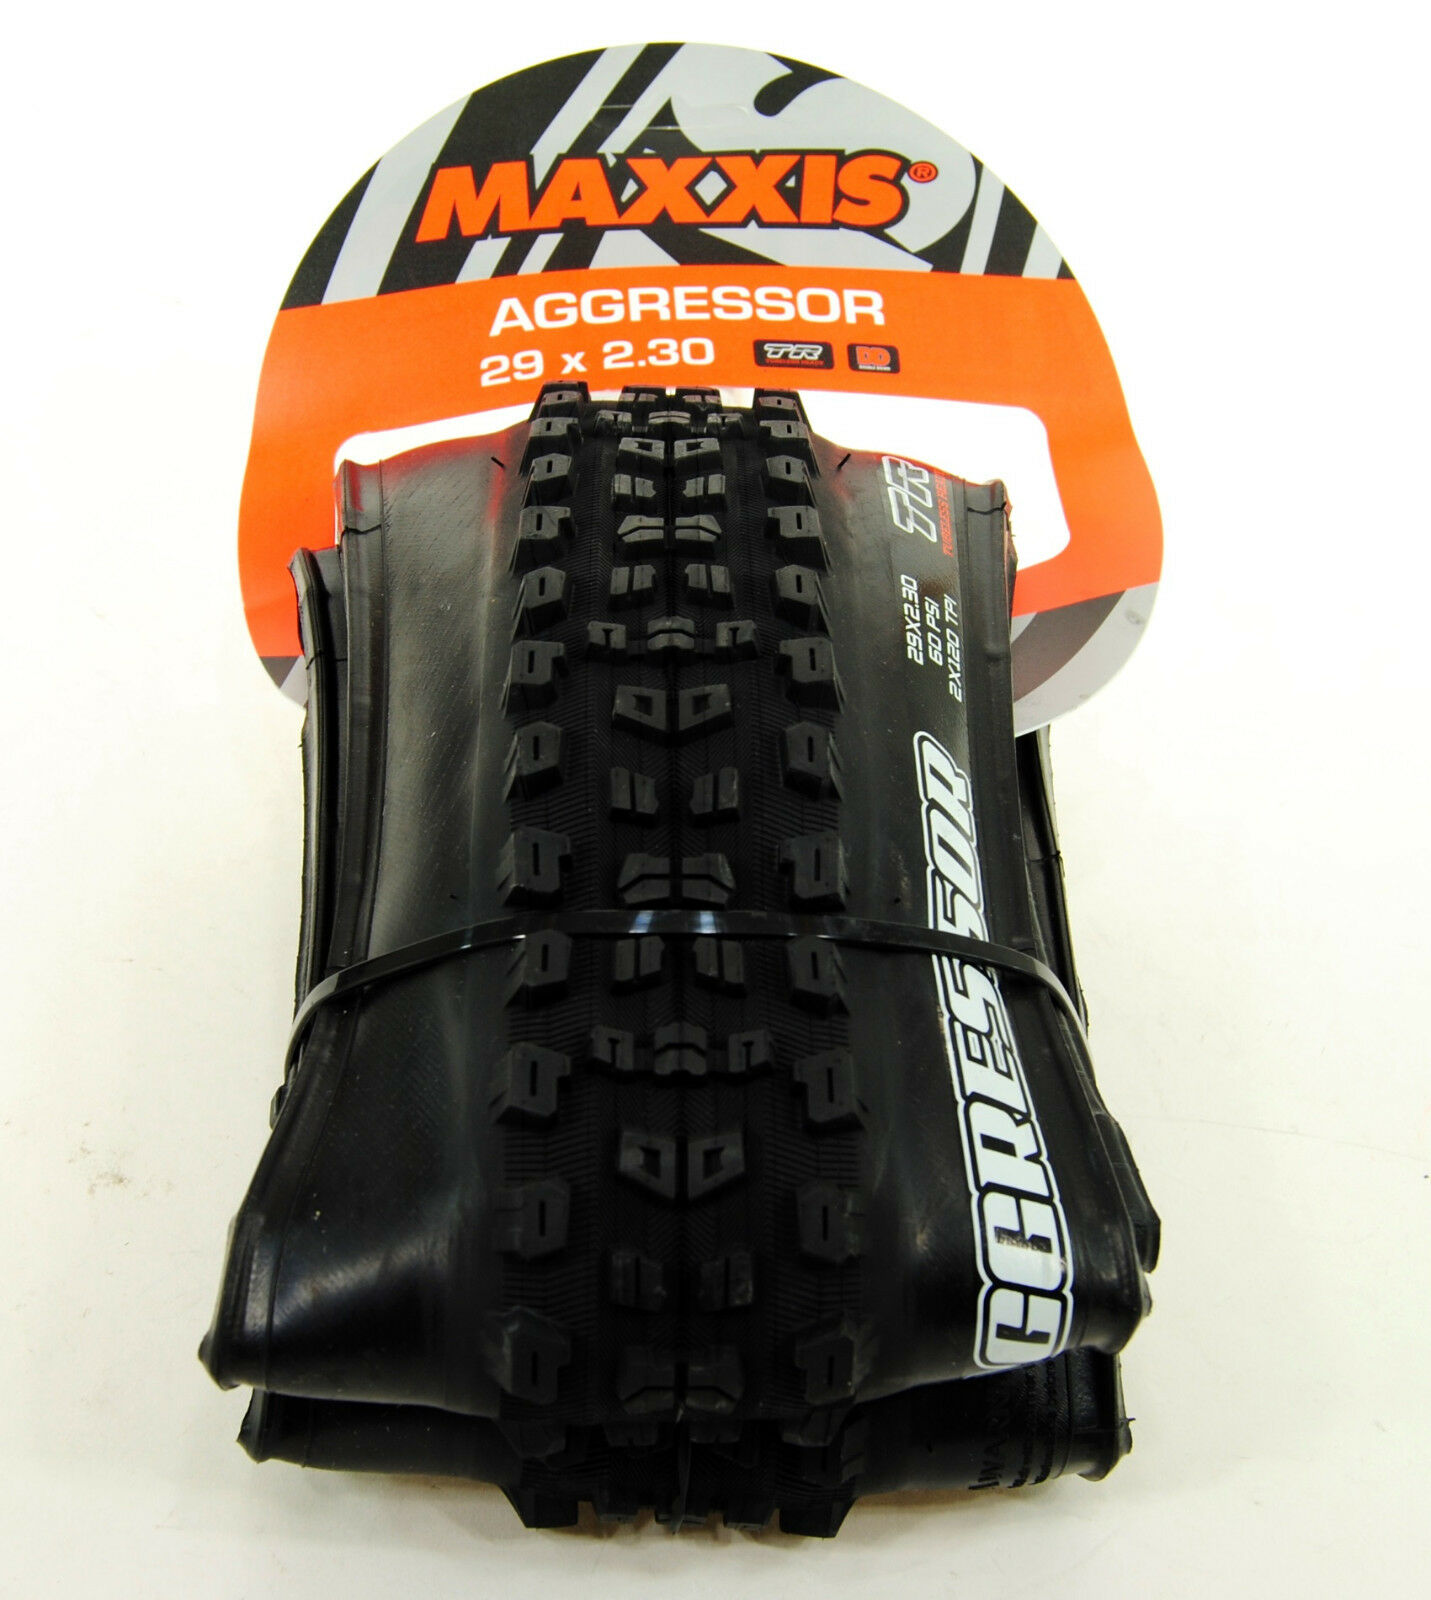 Maxxis Aggressor 29 x 2.30  TR 120tpi 2C Tubeless Ready Mountain Bike Tire